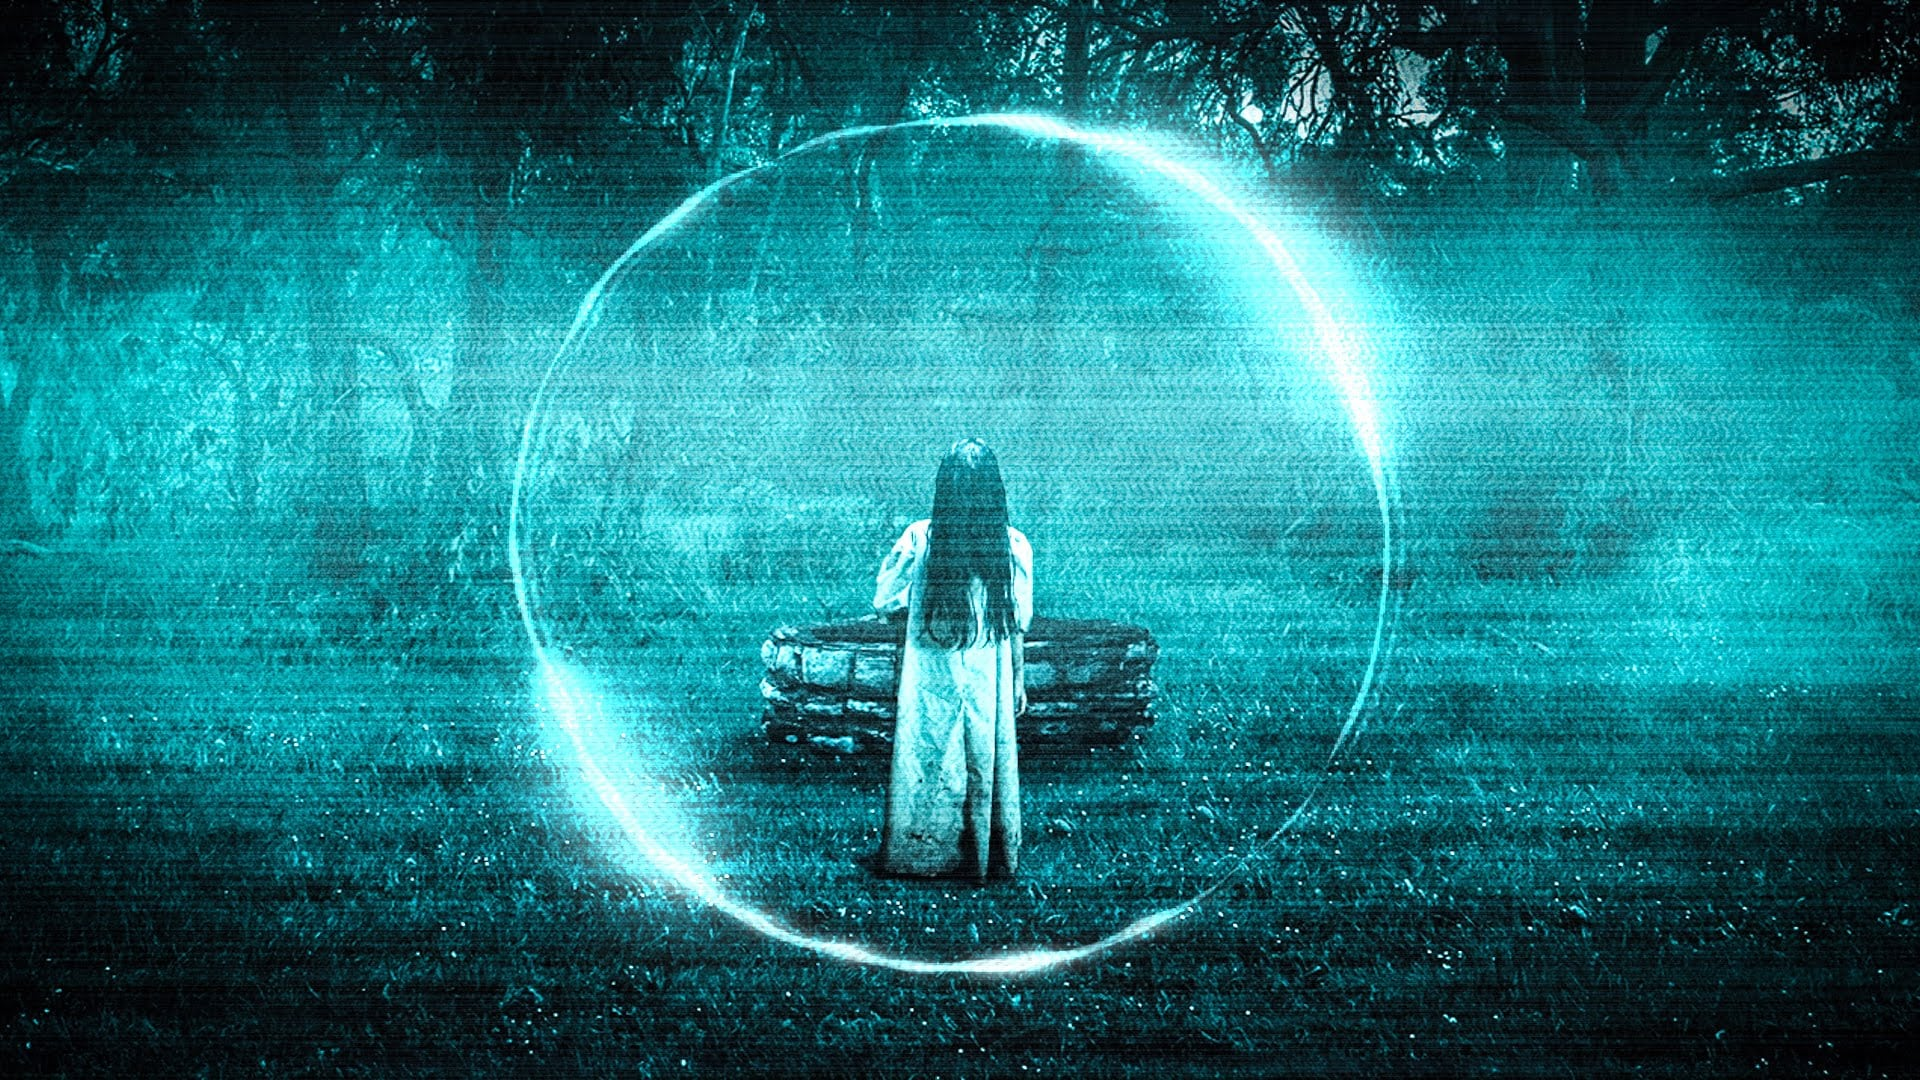 THE RING cast